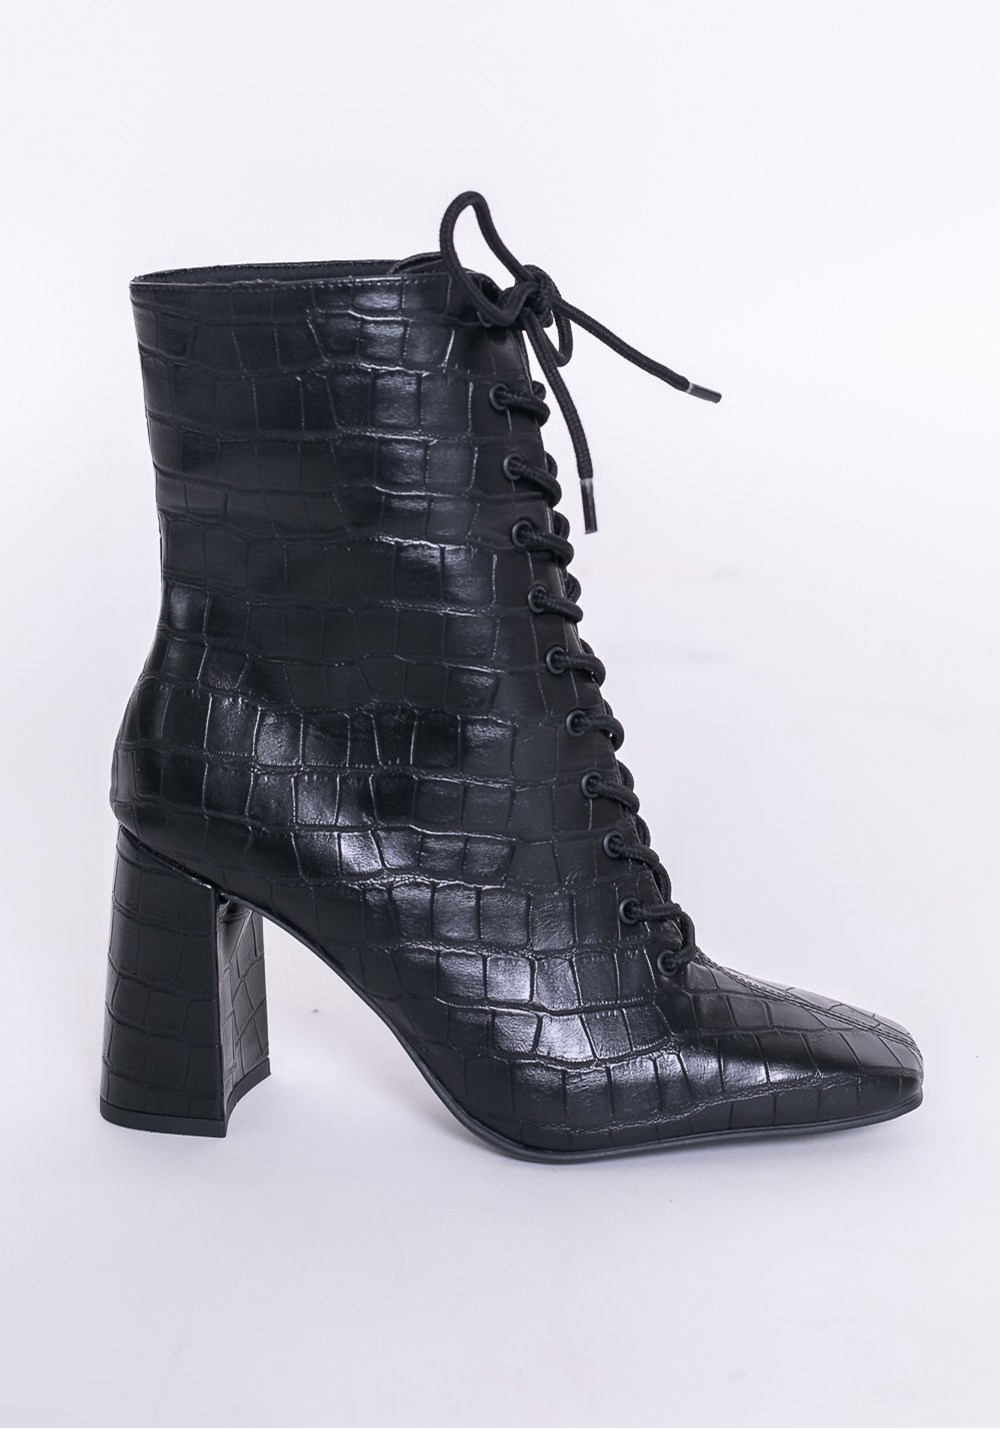 Bota ankle boot shoes texturizada preta